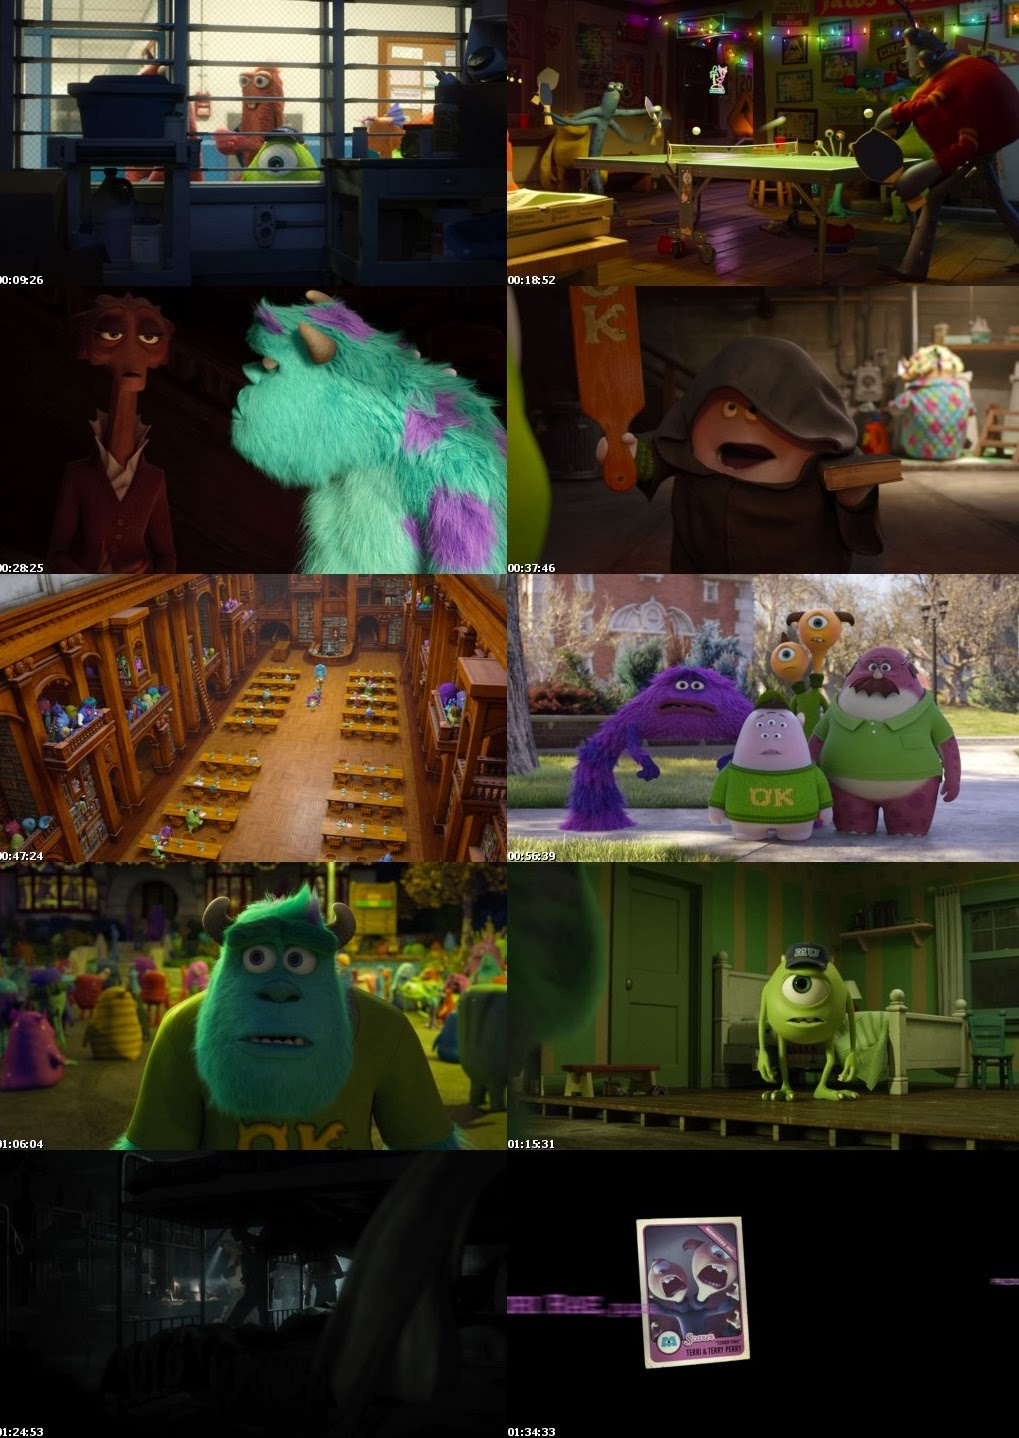 Monsters university 2013 bluray 720p mkv details a look at the relationship between mike and sulley during their days at monsters university when they werent necessarily the best of friends voltagebd Images